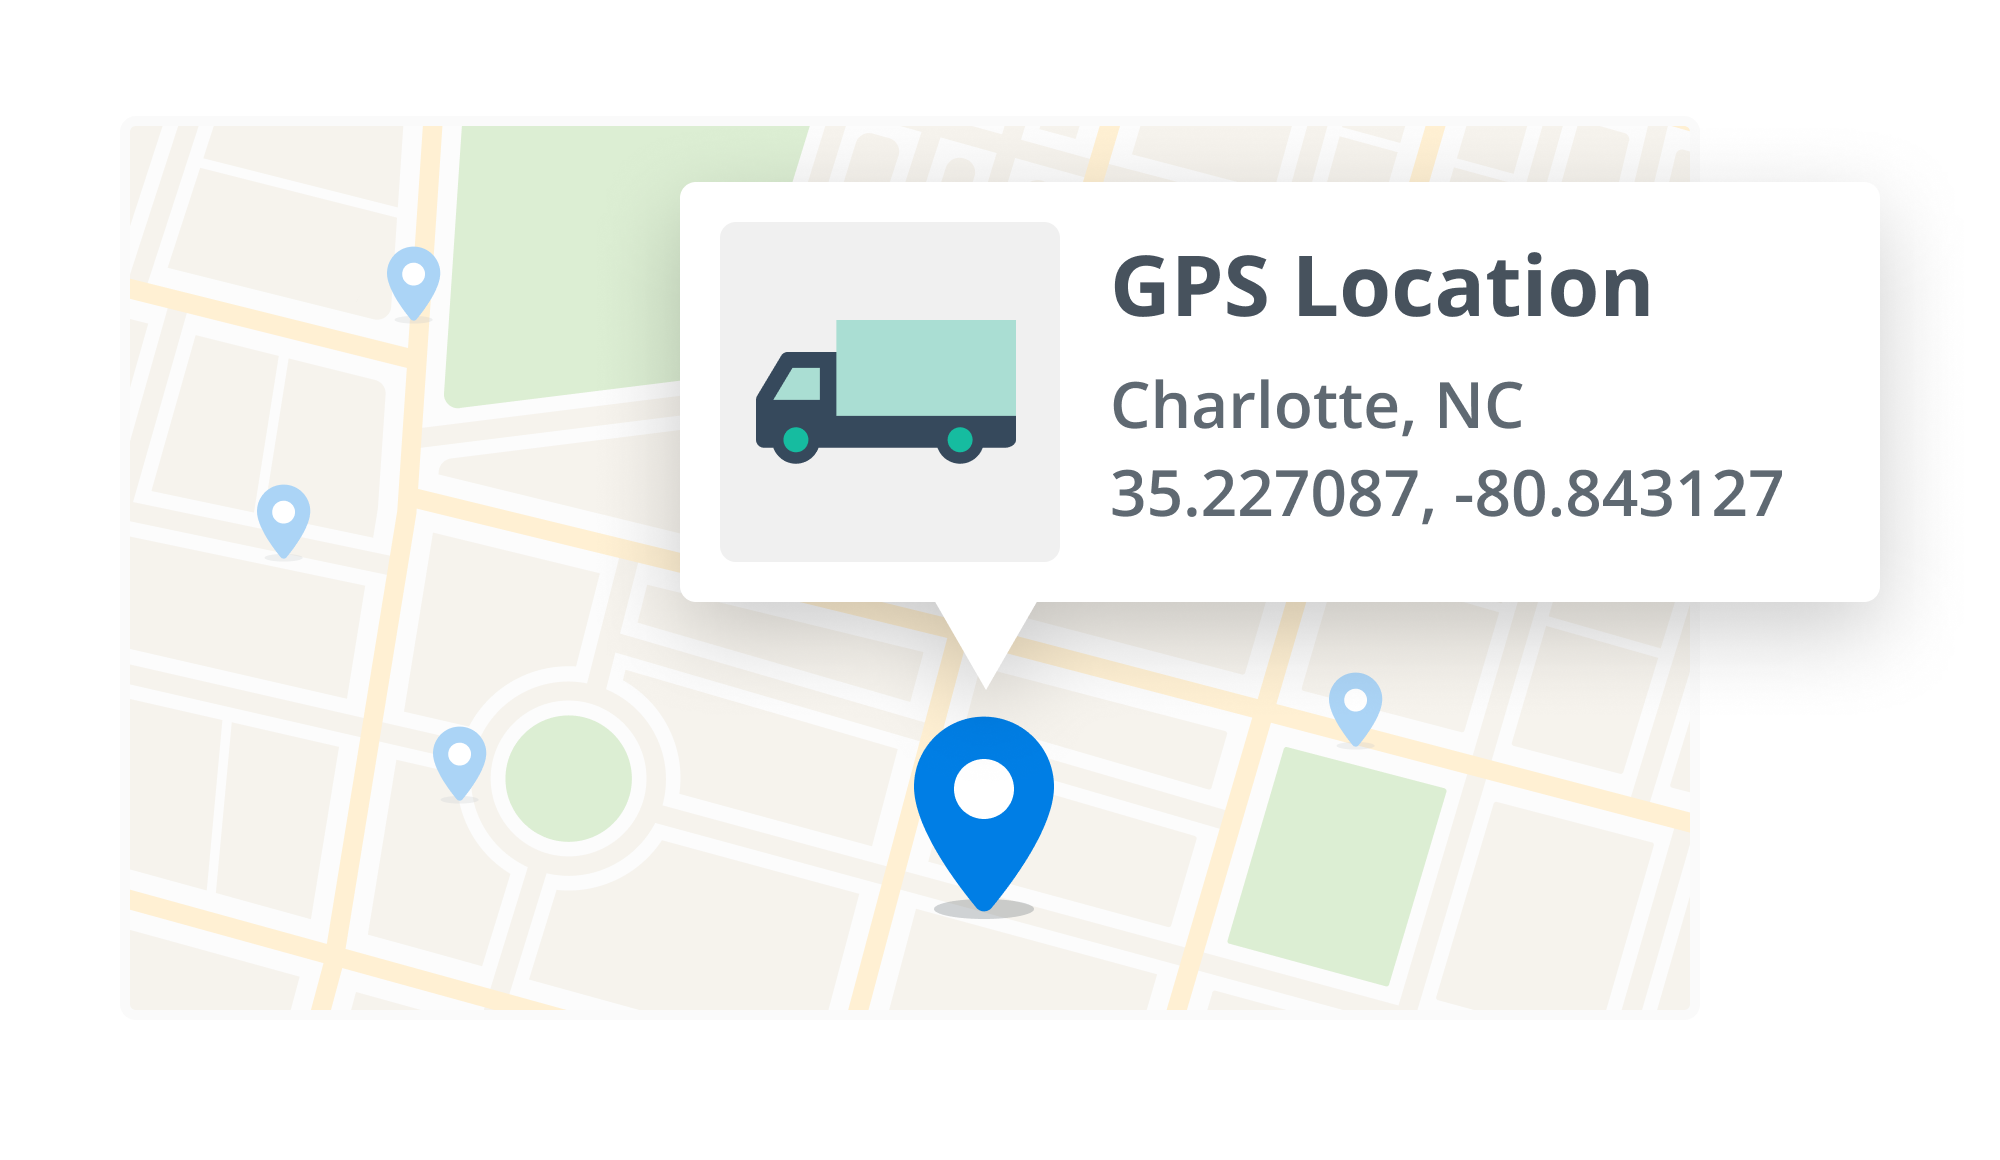 Feature_GPS-Location.png